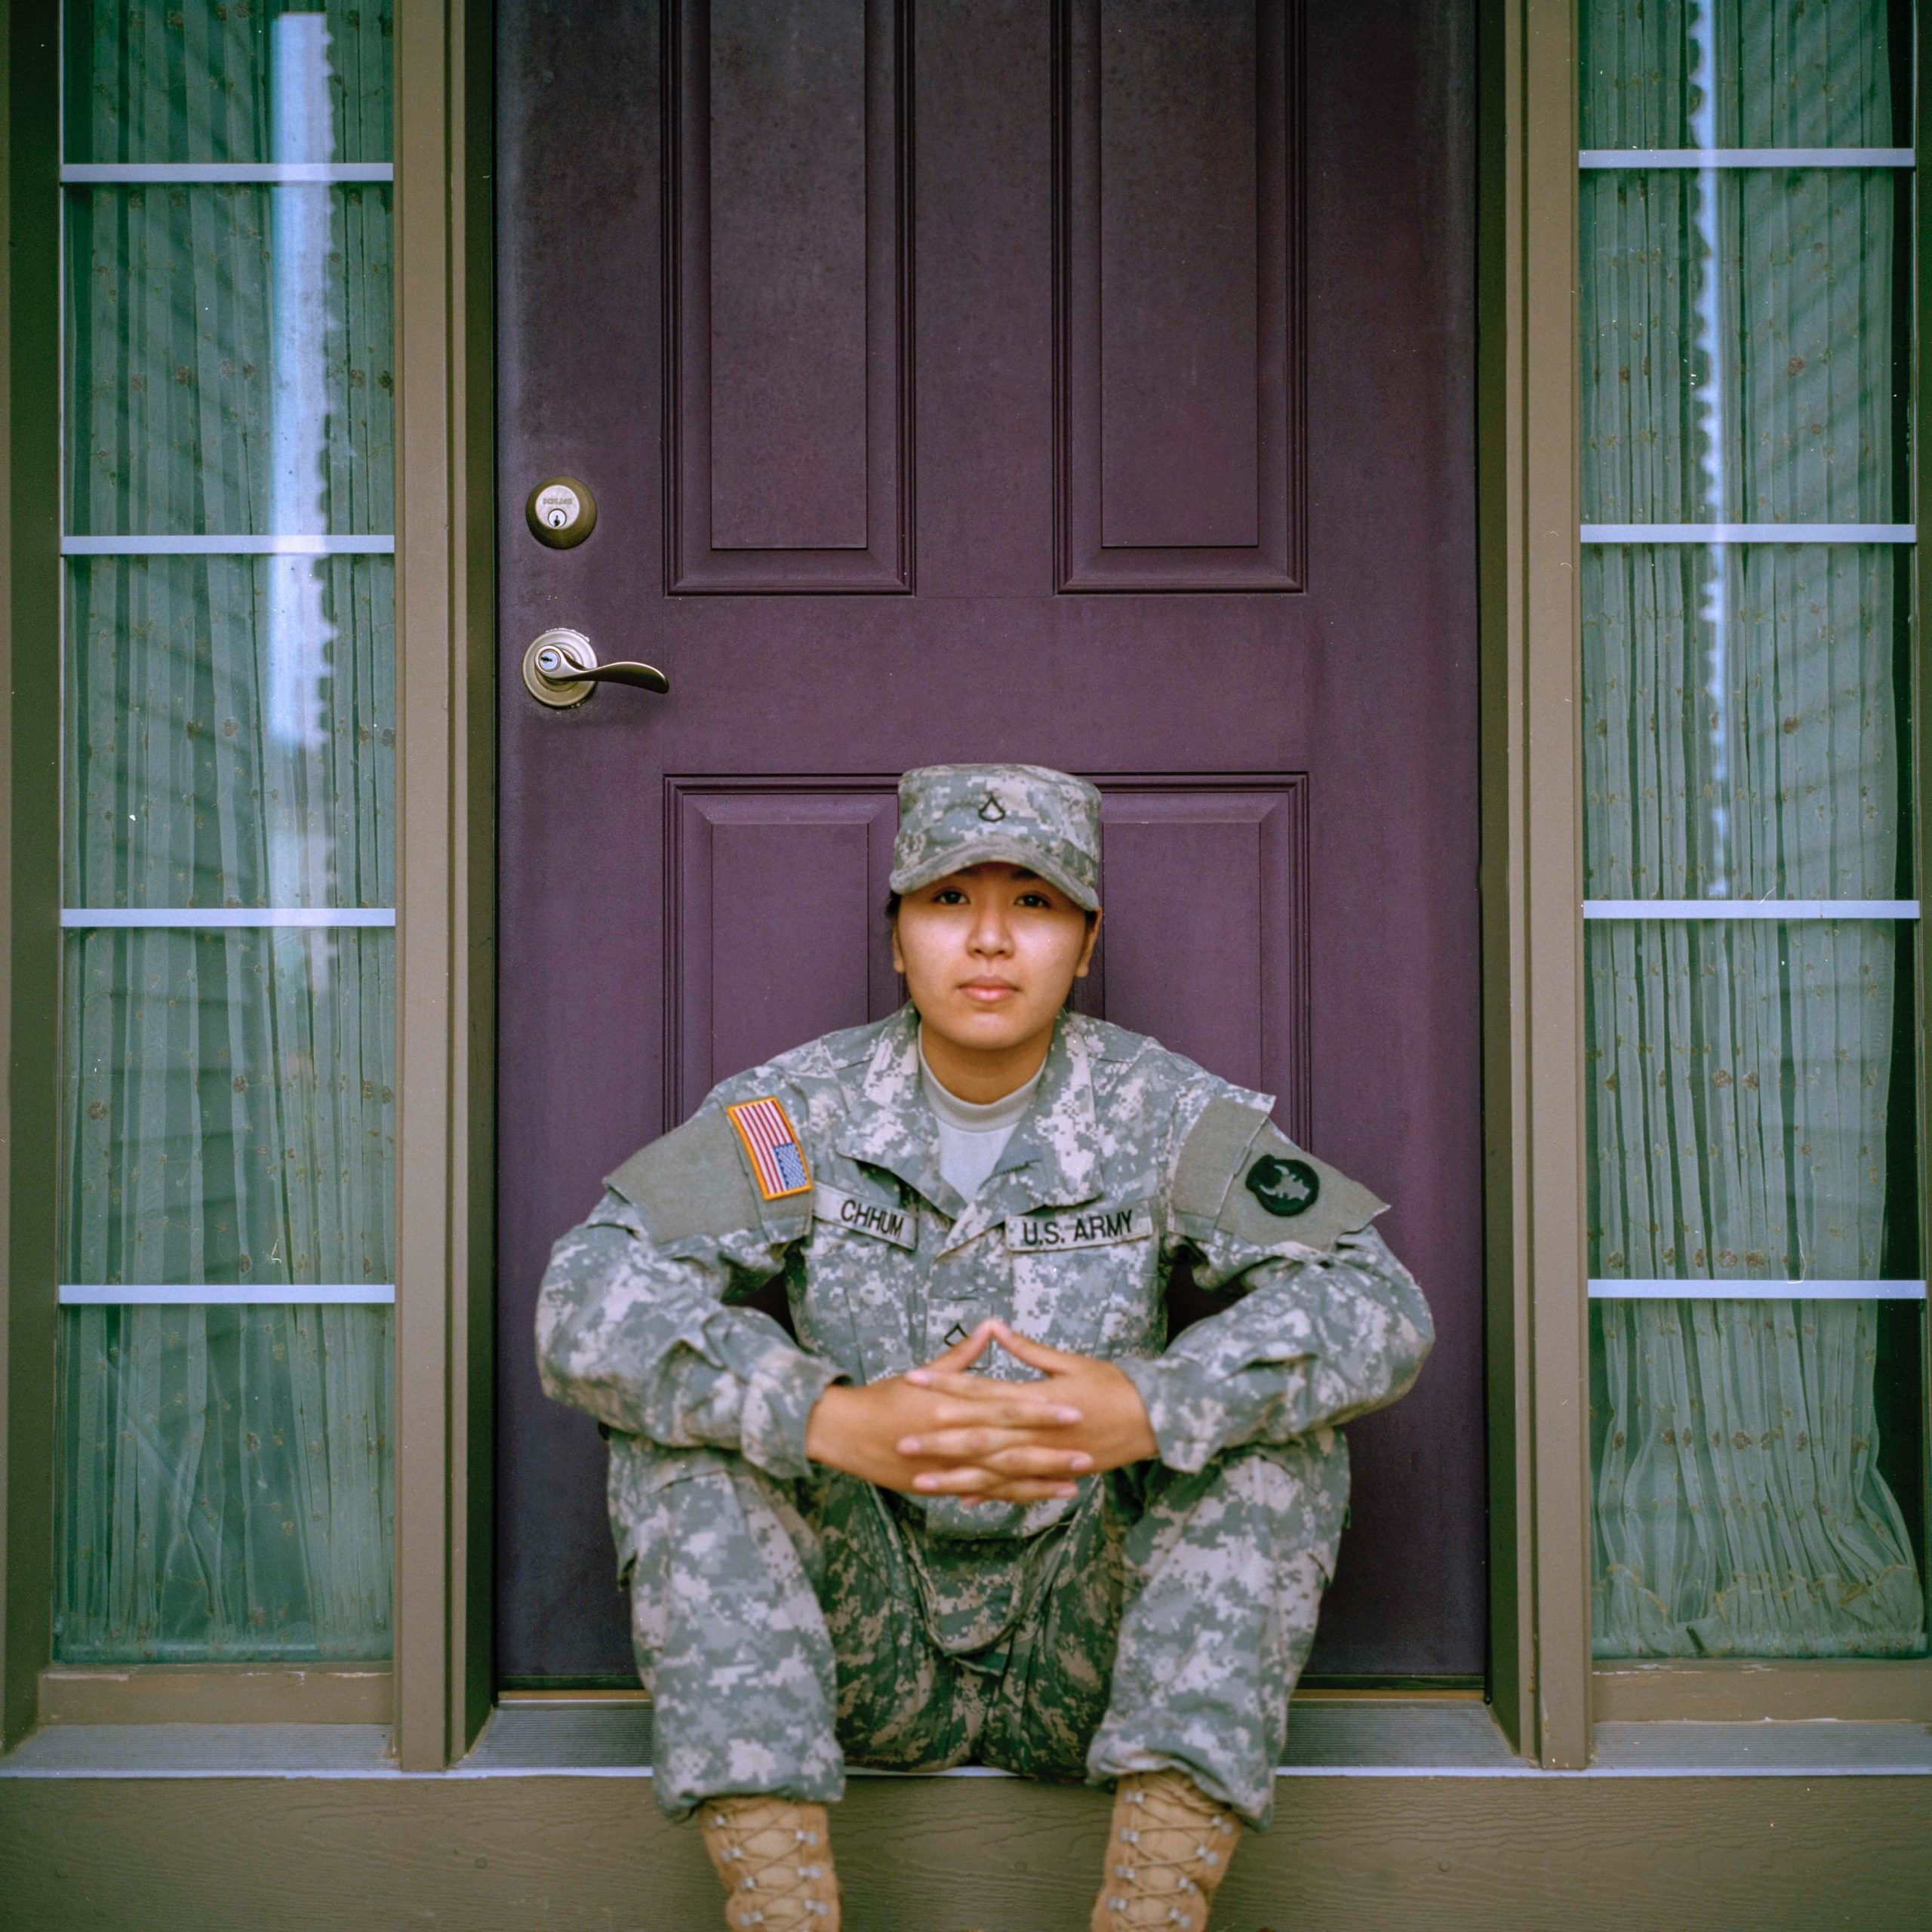 Female service member sitting in front of a doorway